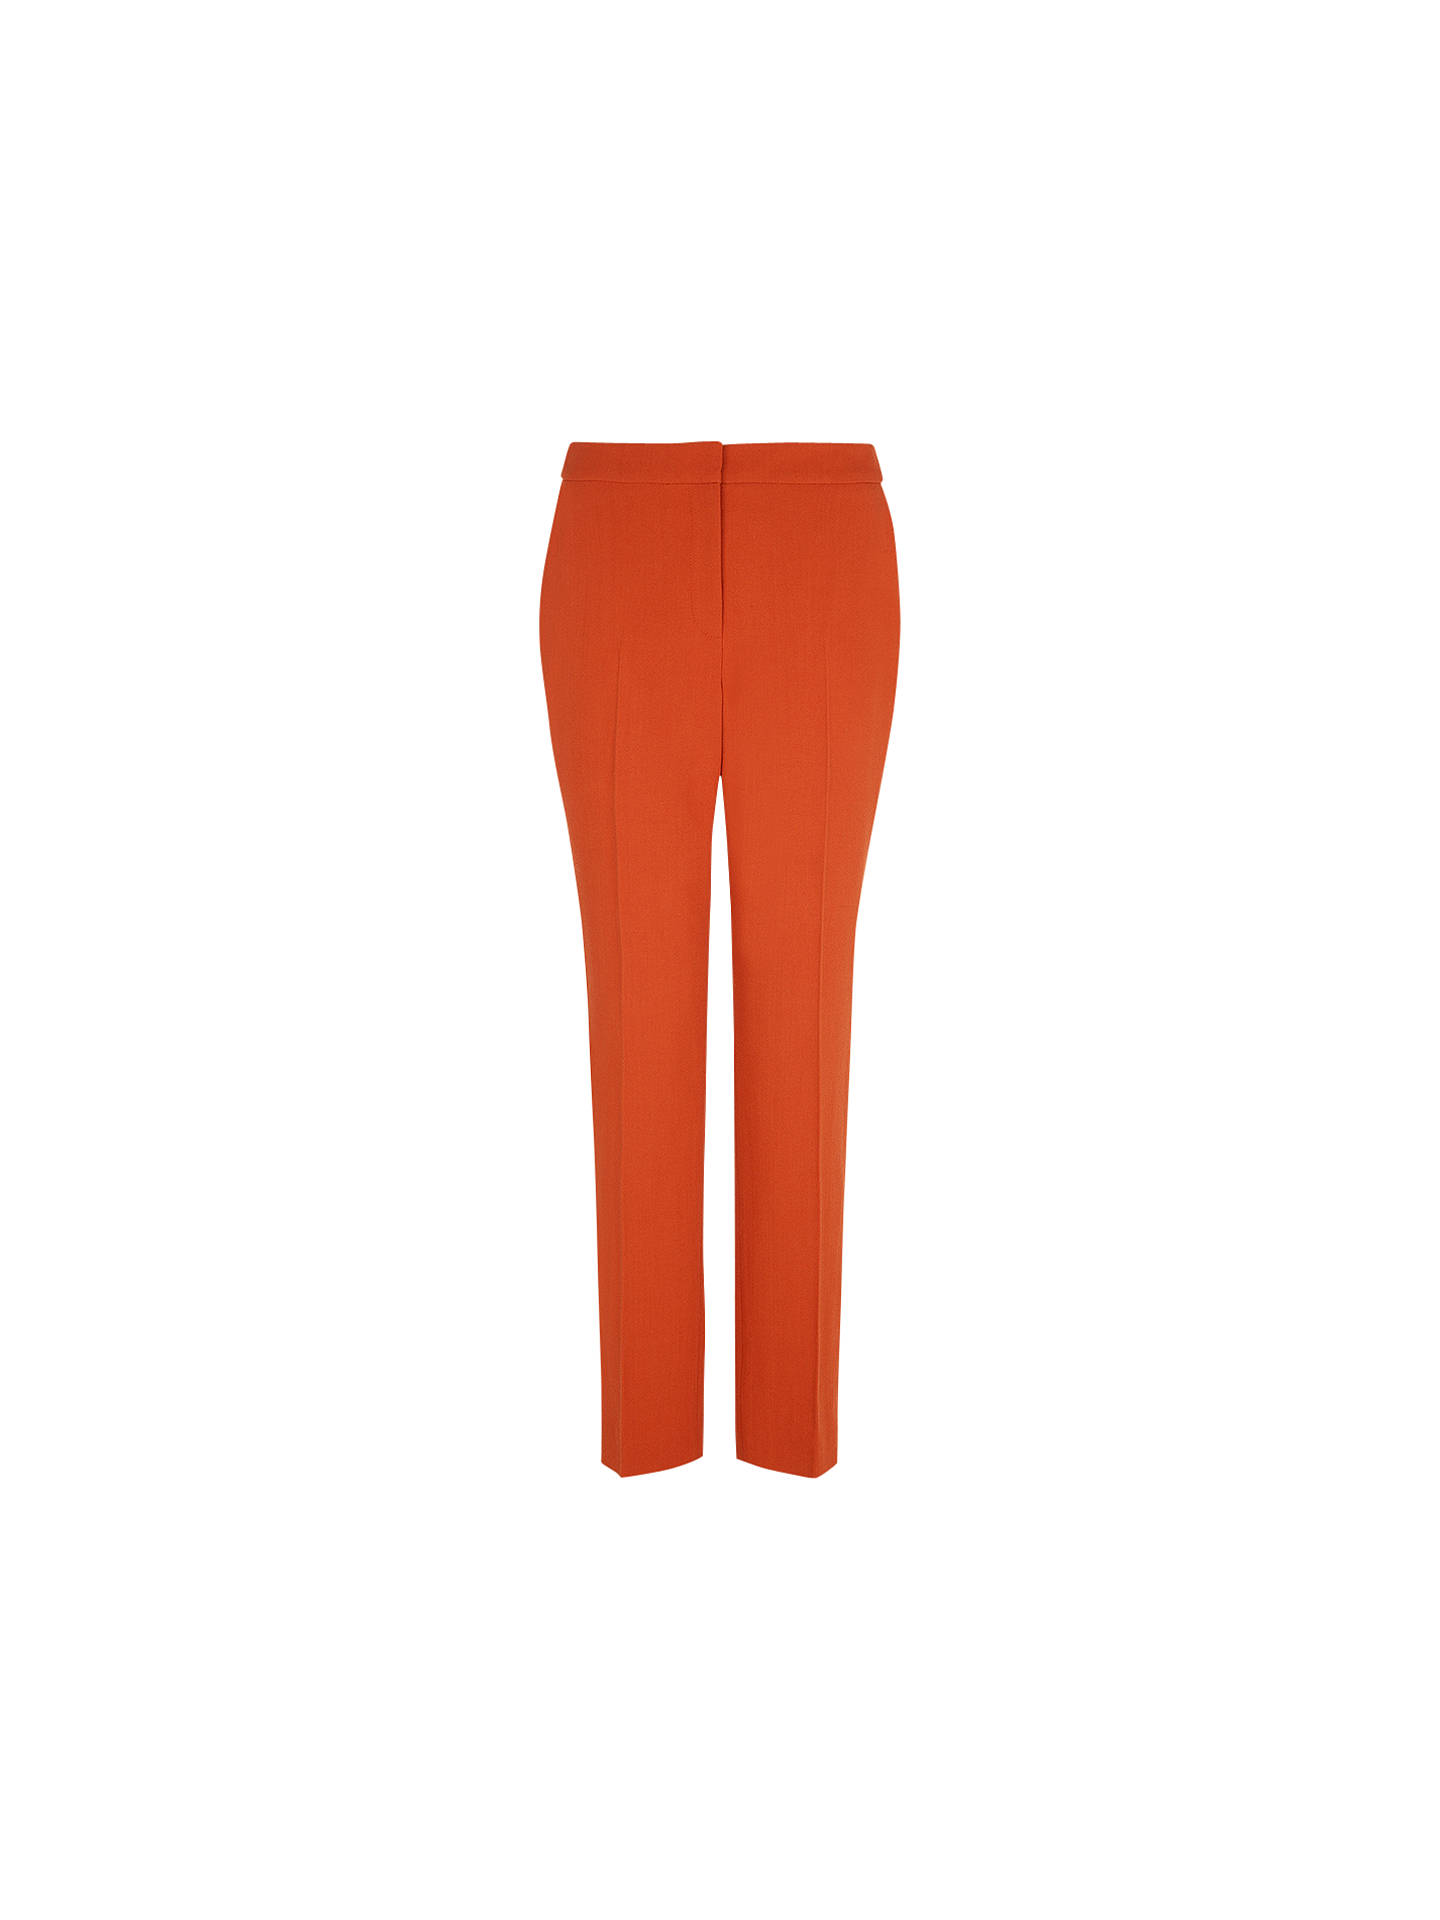 Buy Hobbs London Eaton Trousers, Pumpkin Orange, 8 Online at johnlewis.com